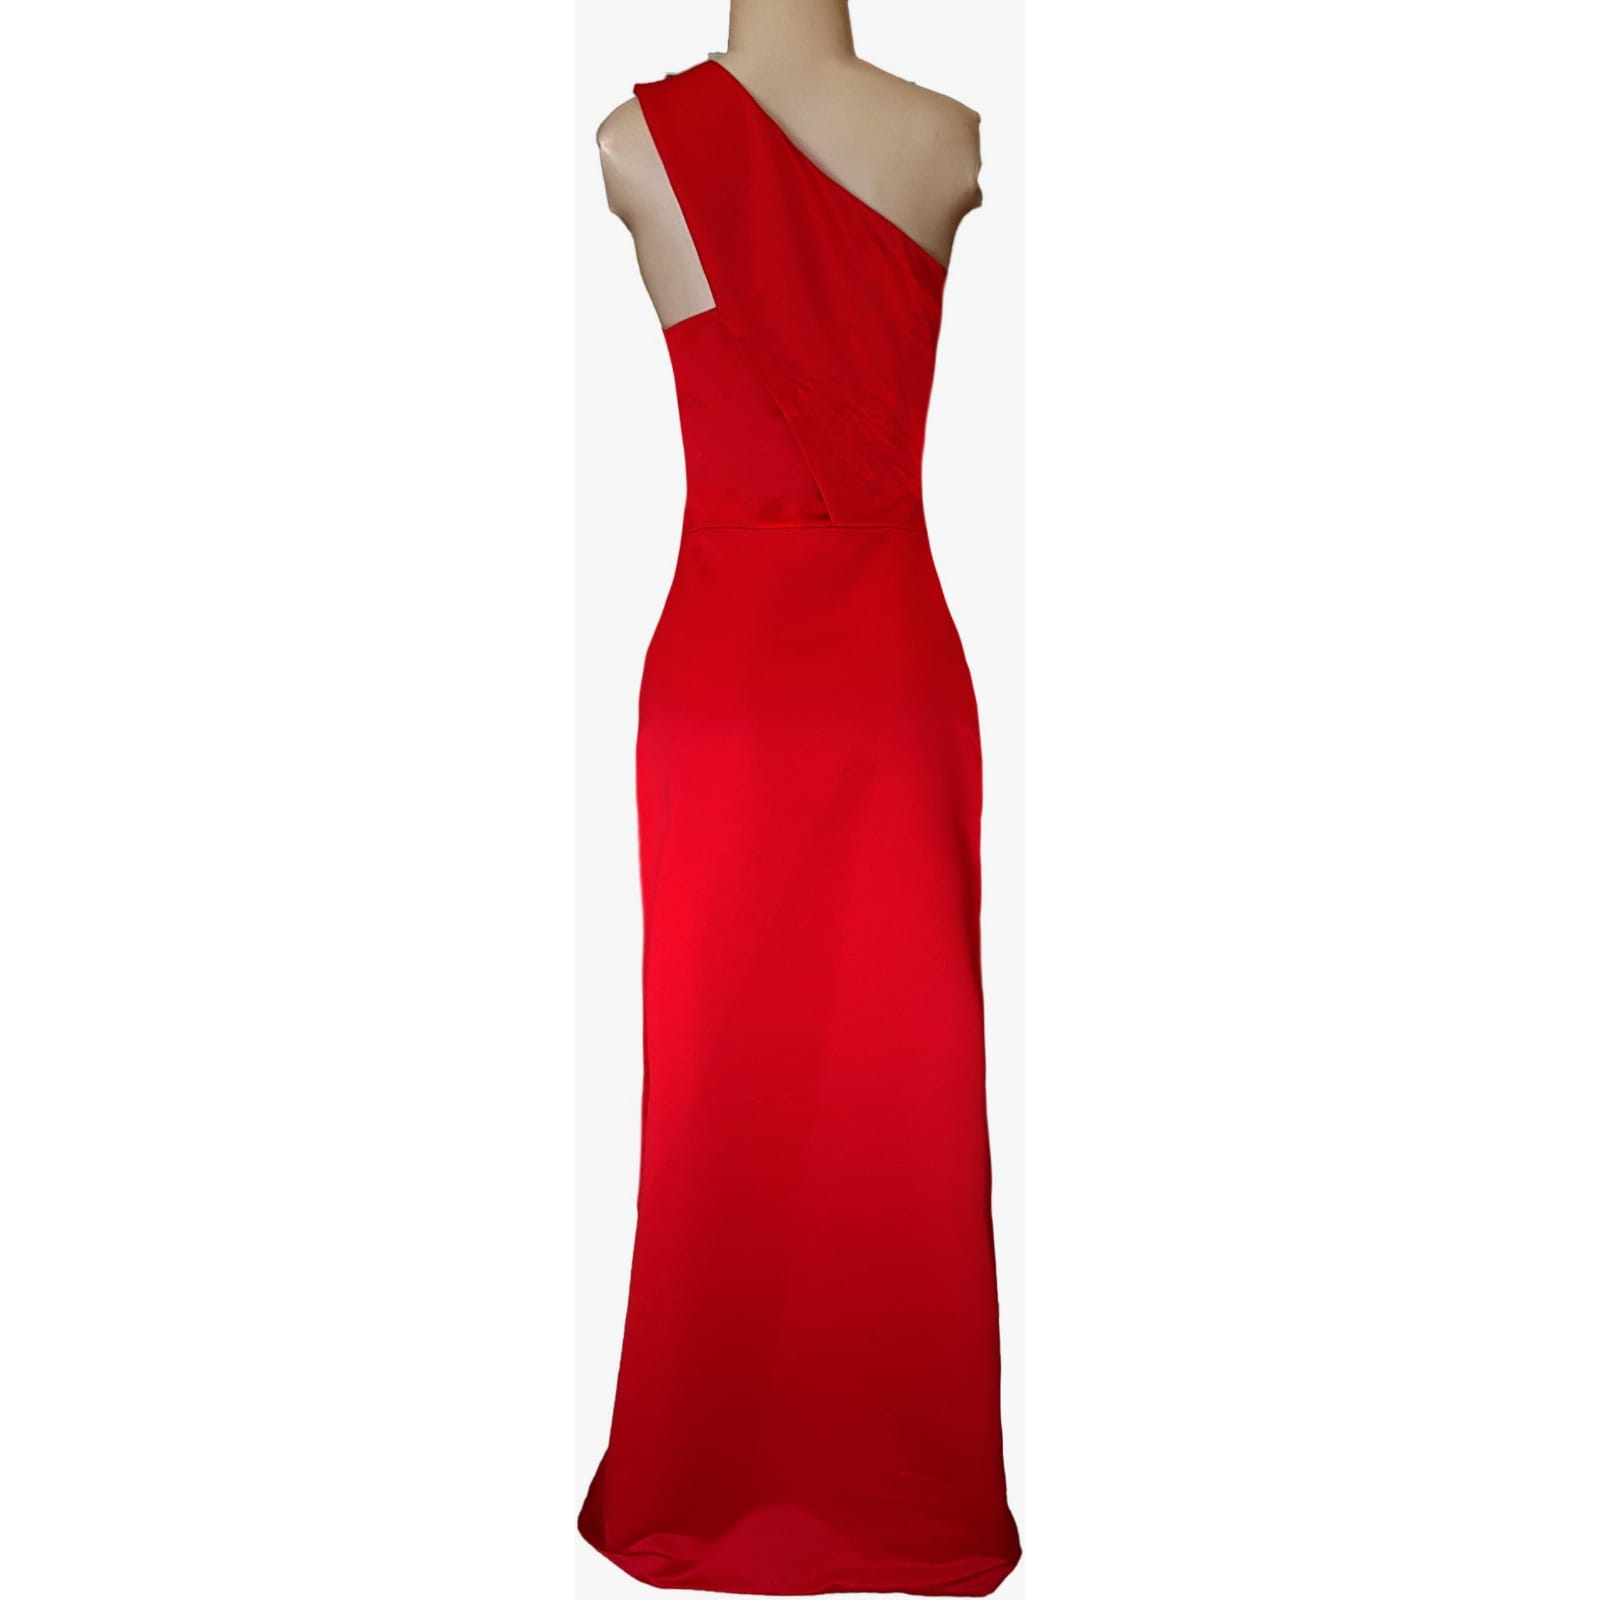 Bright red duchess satin single shoulder prom dress 4 bright red duchess satin single shoulder prom dress. Straight fit with a crossed slit.